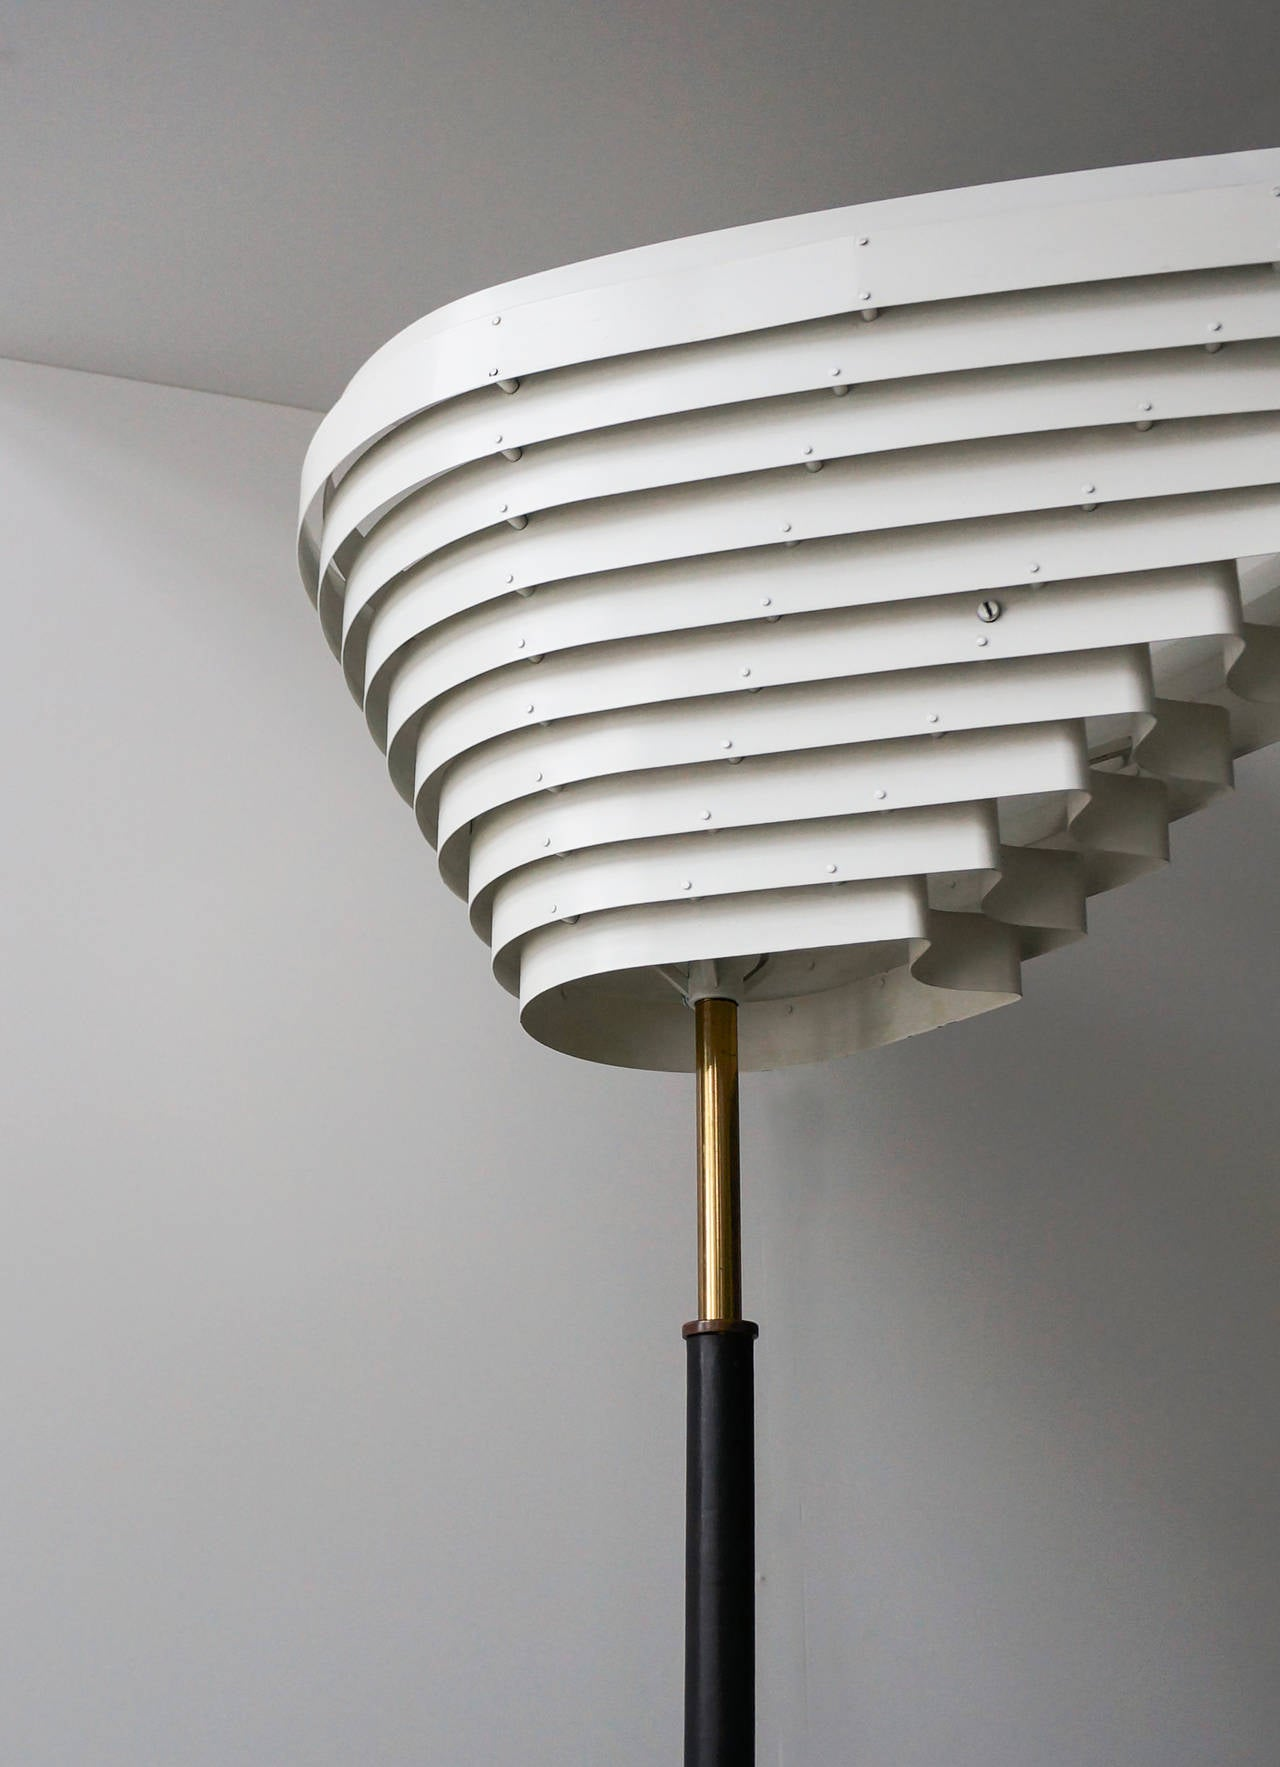 Early Alvar Aalto Floor Lamp, Model A805 for Valaistustyö Ky, 1954 In Excellent Condition For Sale In Houston, TX